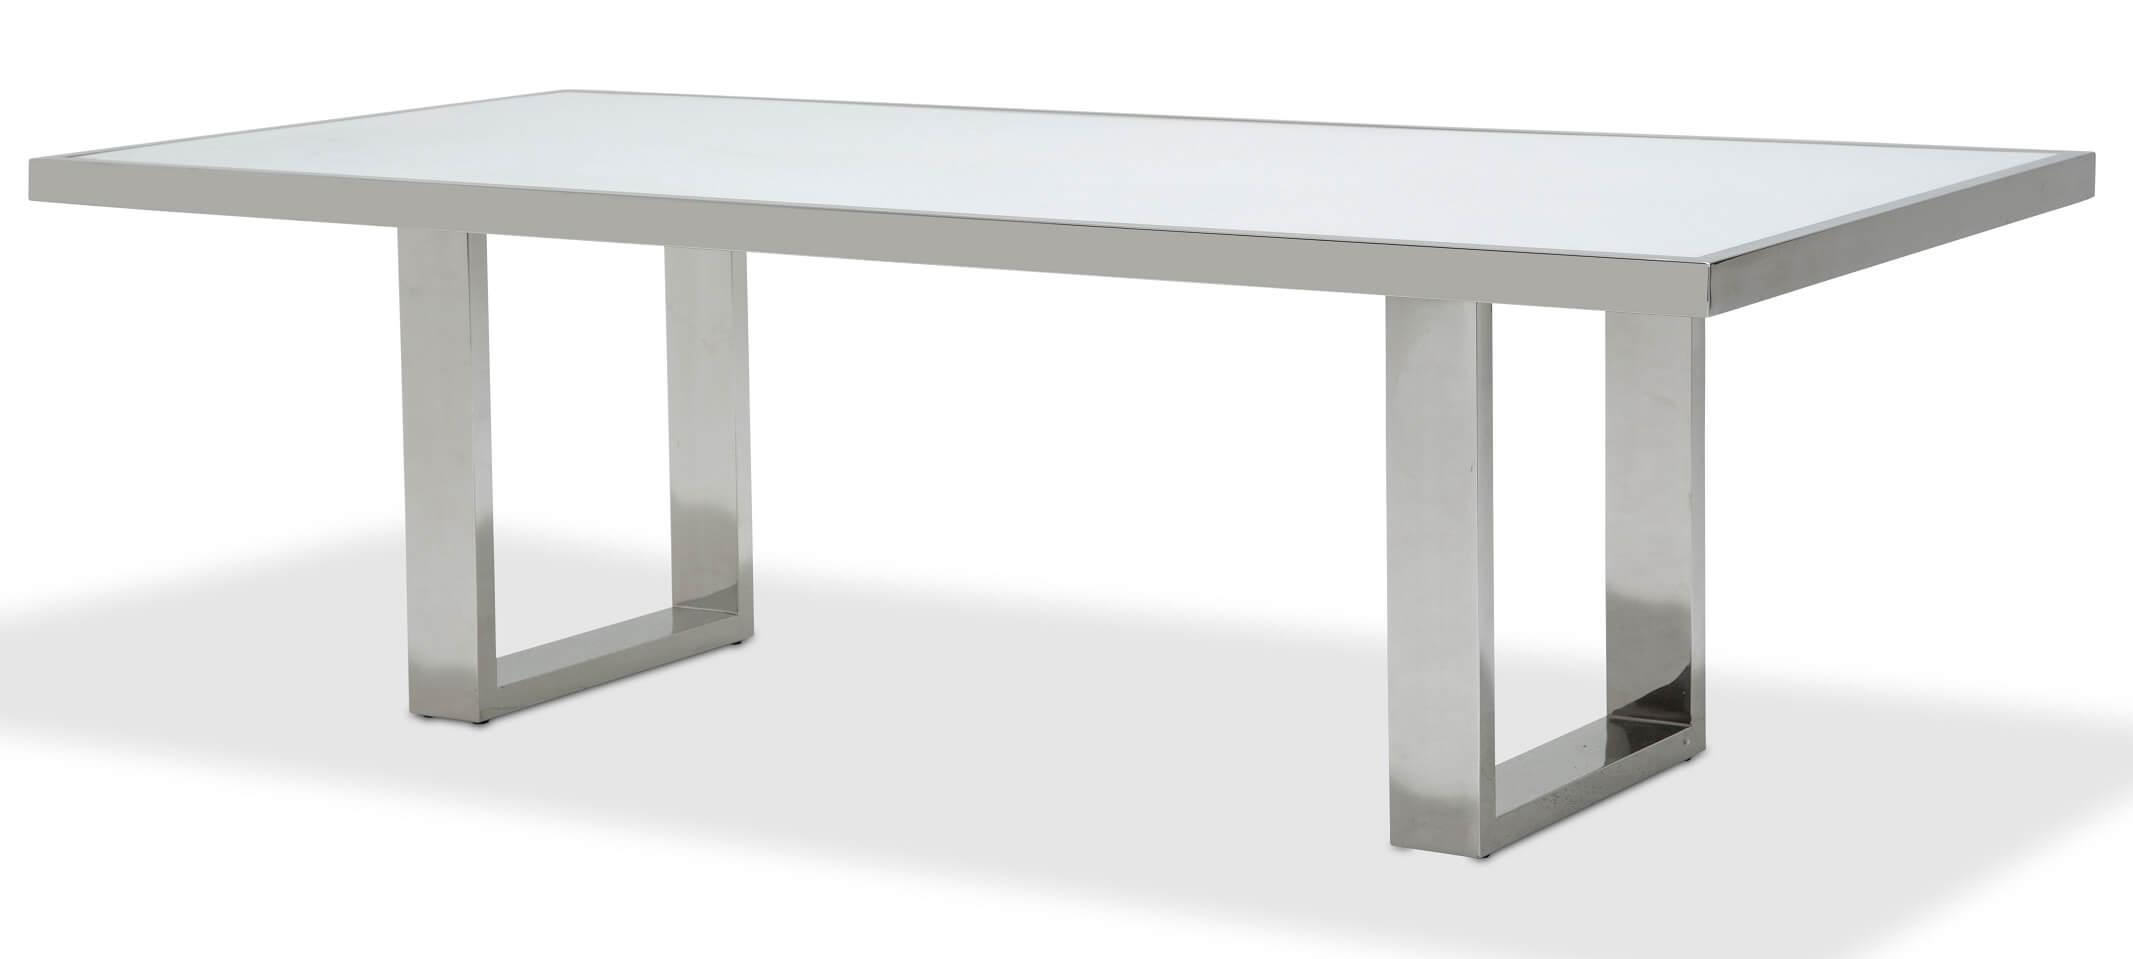 Michael Amini State St Rectangular Dining Table Usa Warehouse Furniture